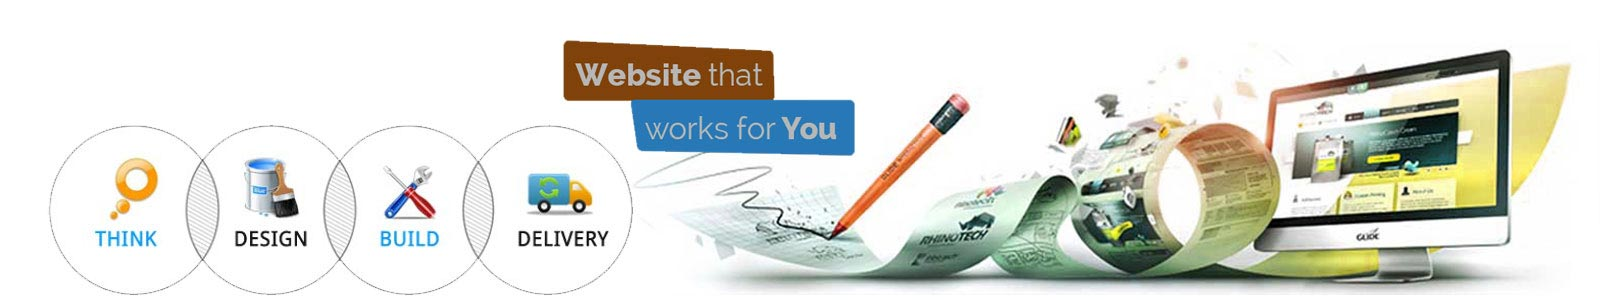 seo services in cochin